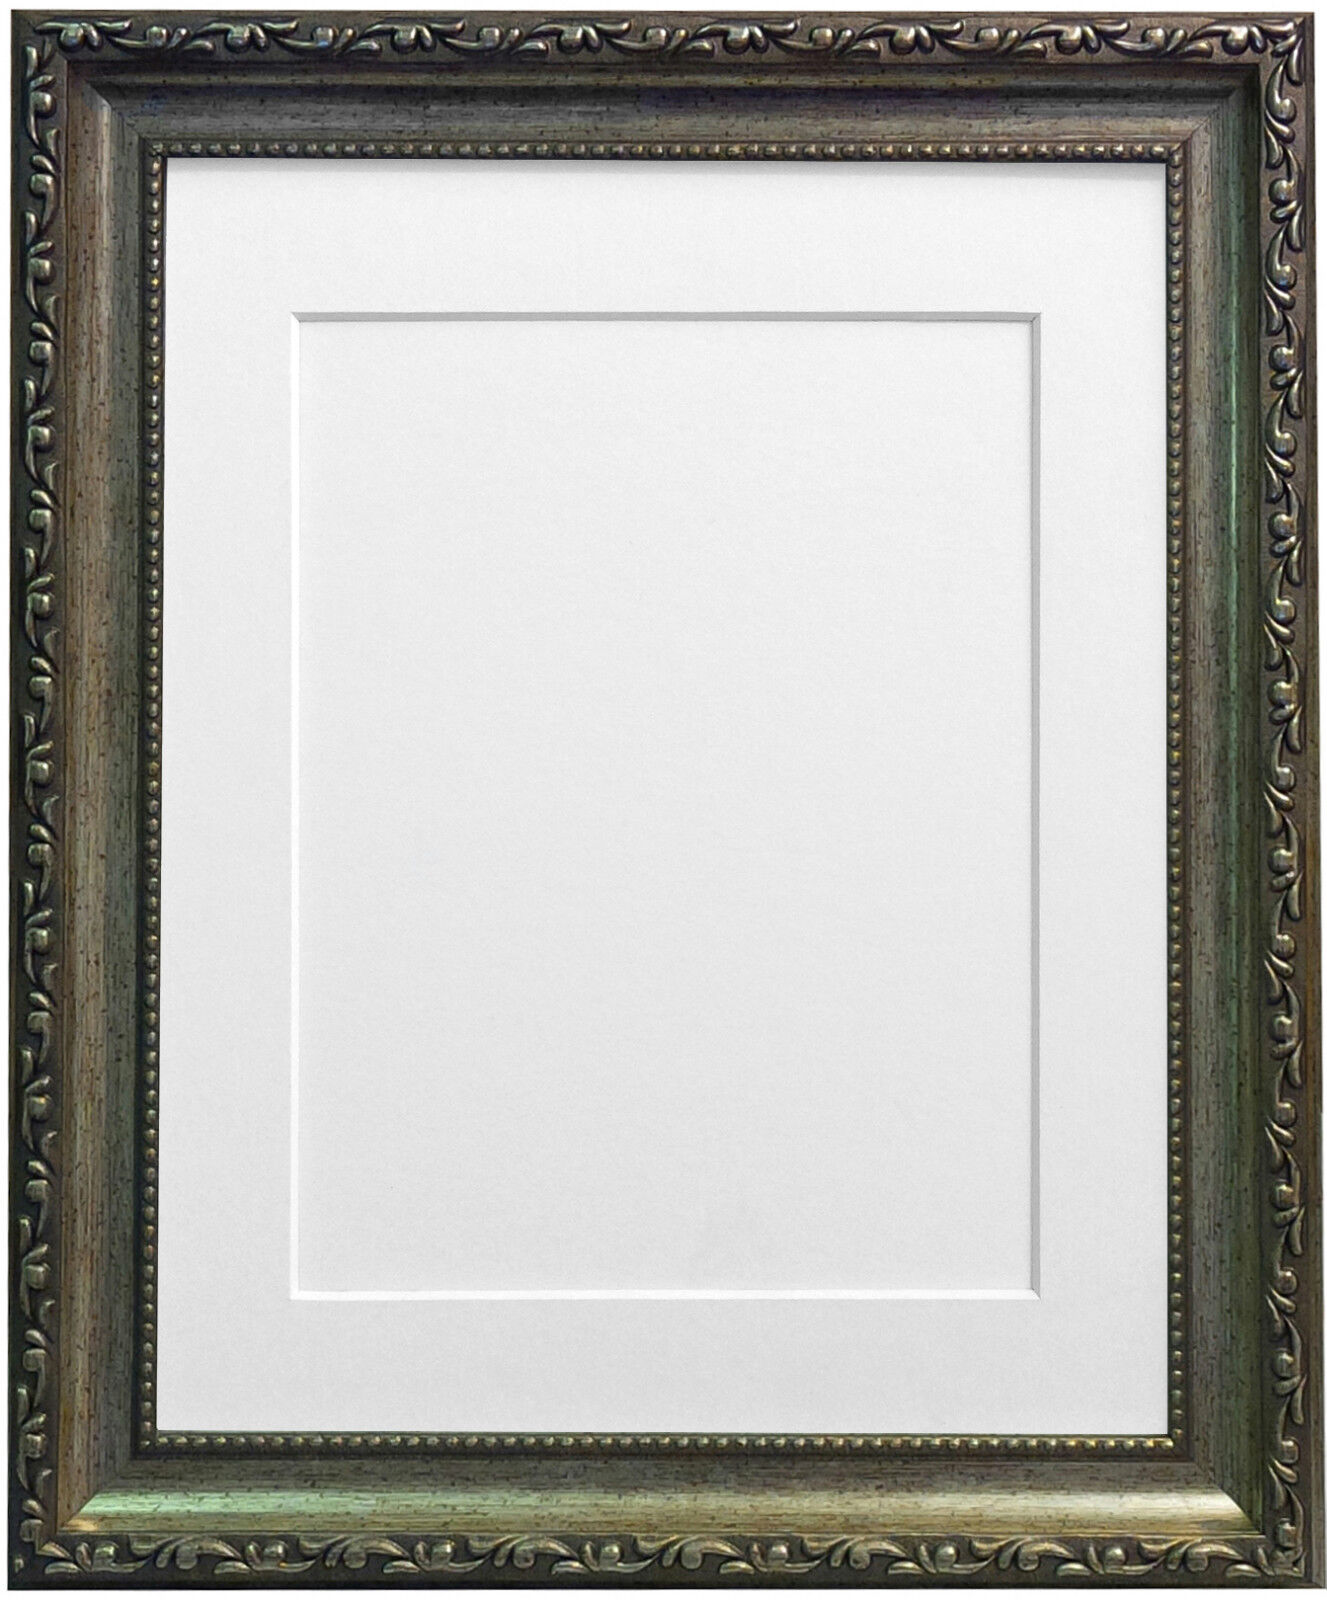 Shabby Chic Ornate Antique Silver Photo Picture Frames & Mount ...